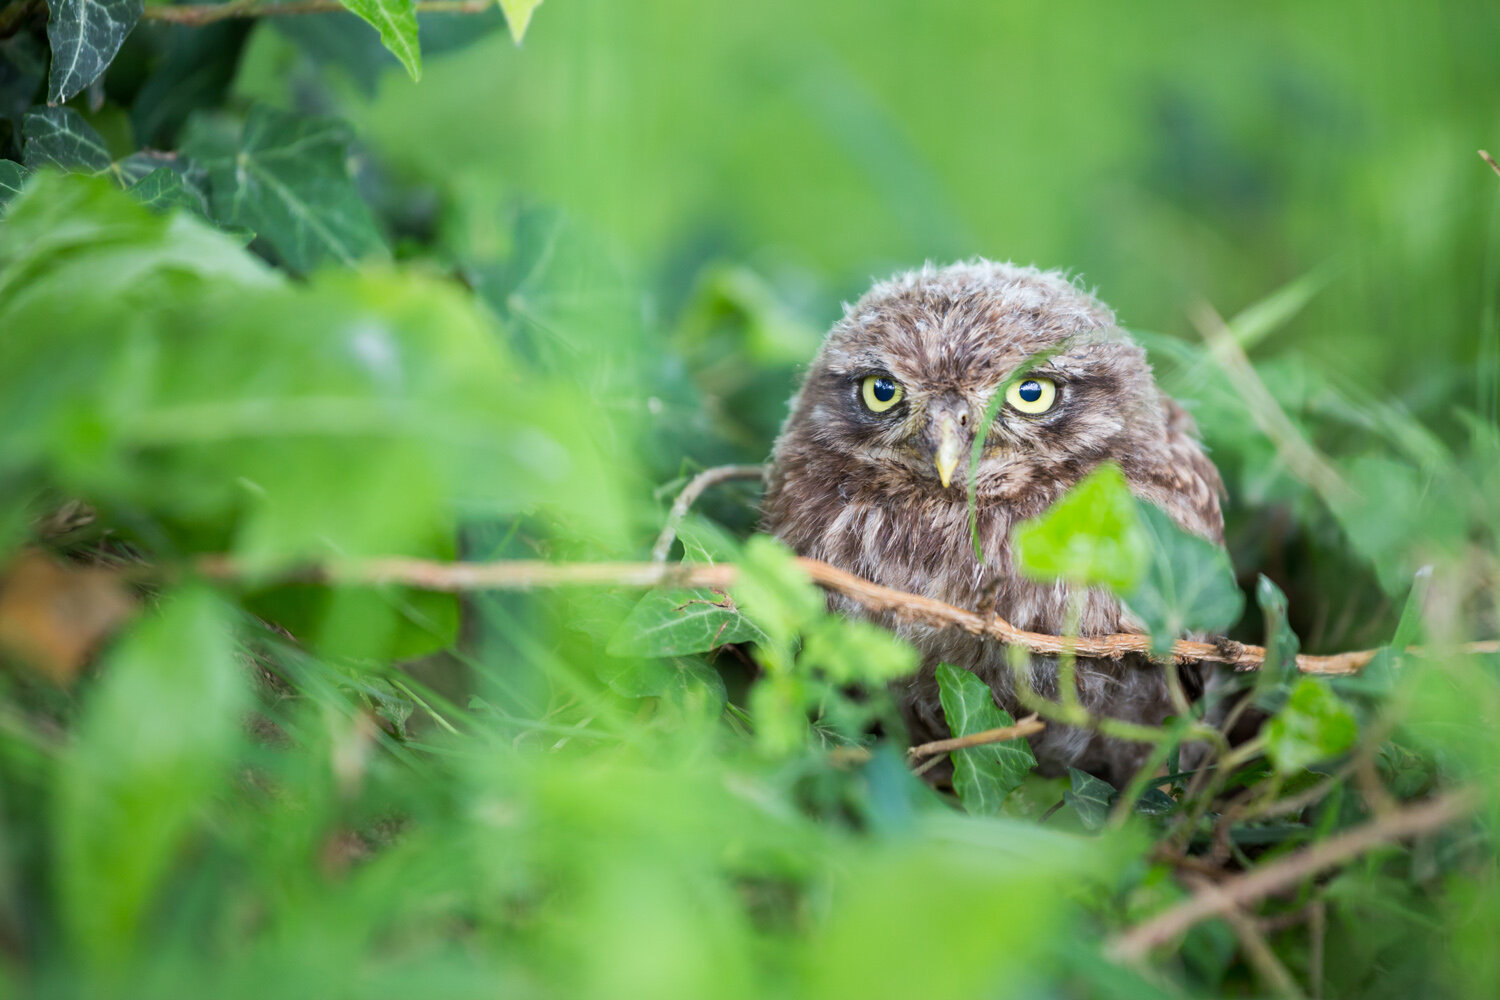 A 'little owl' in its natural habitat.